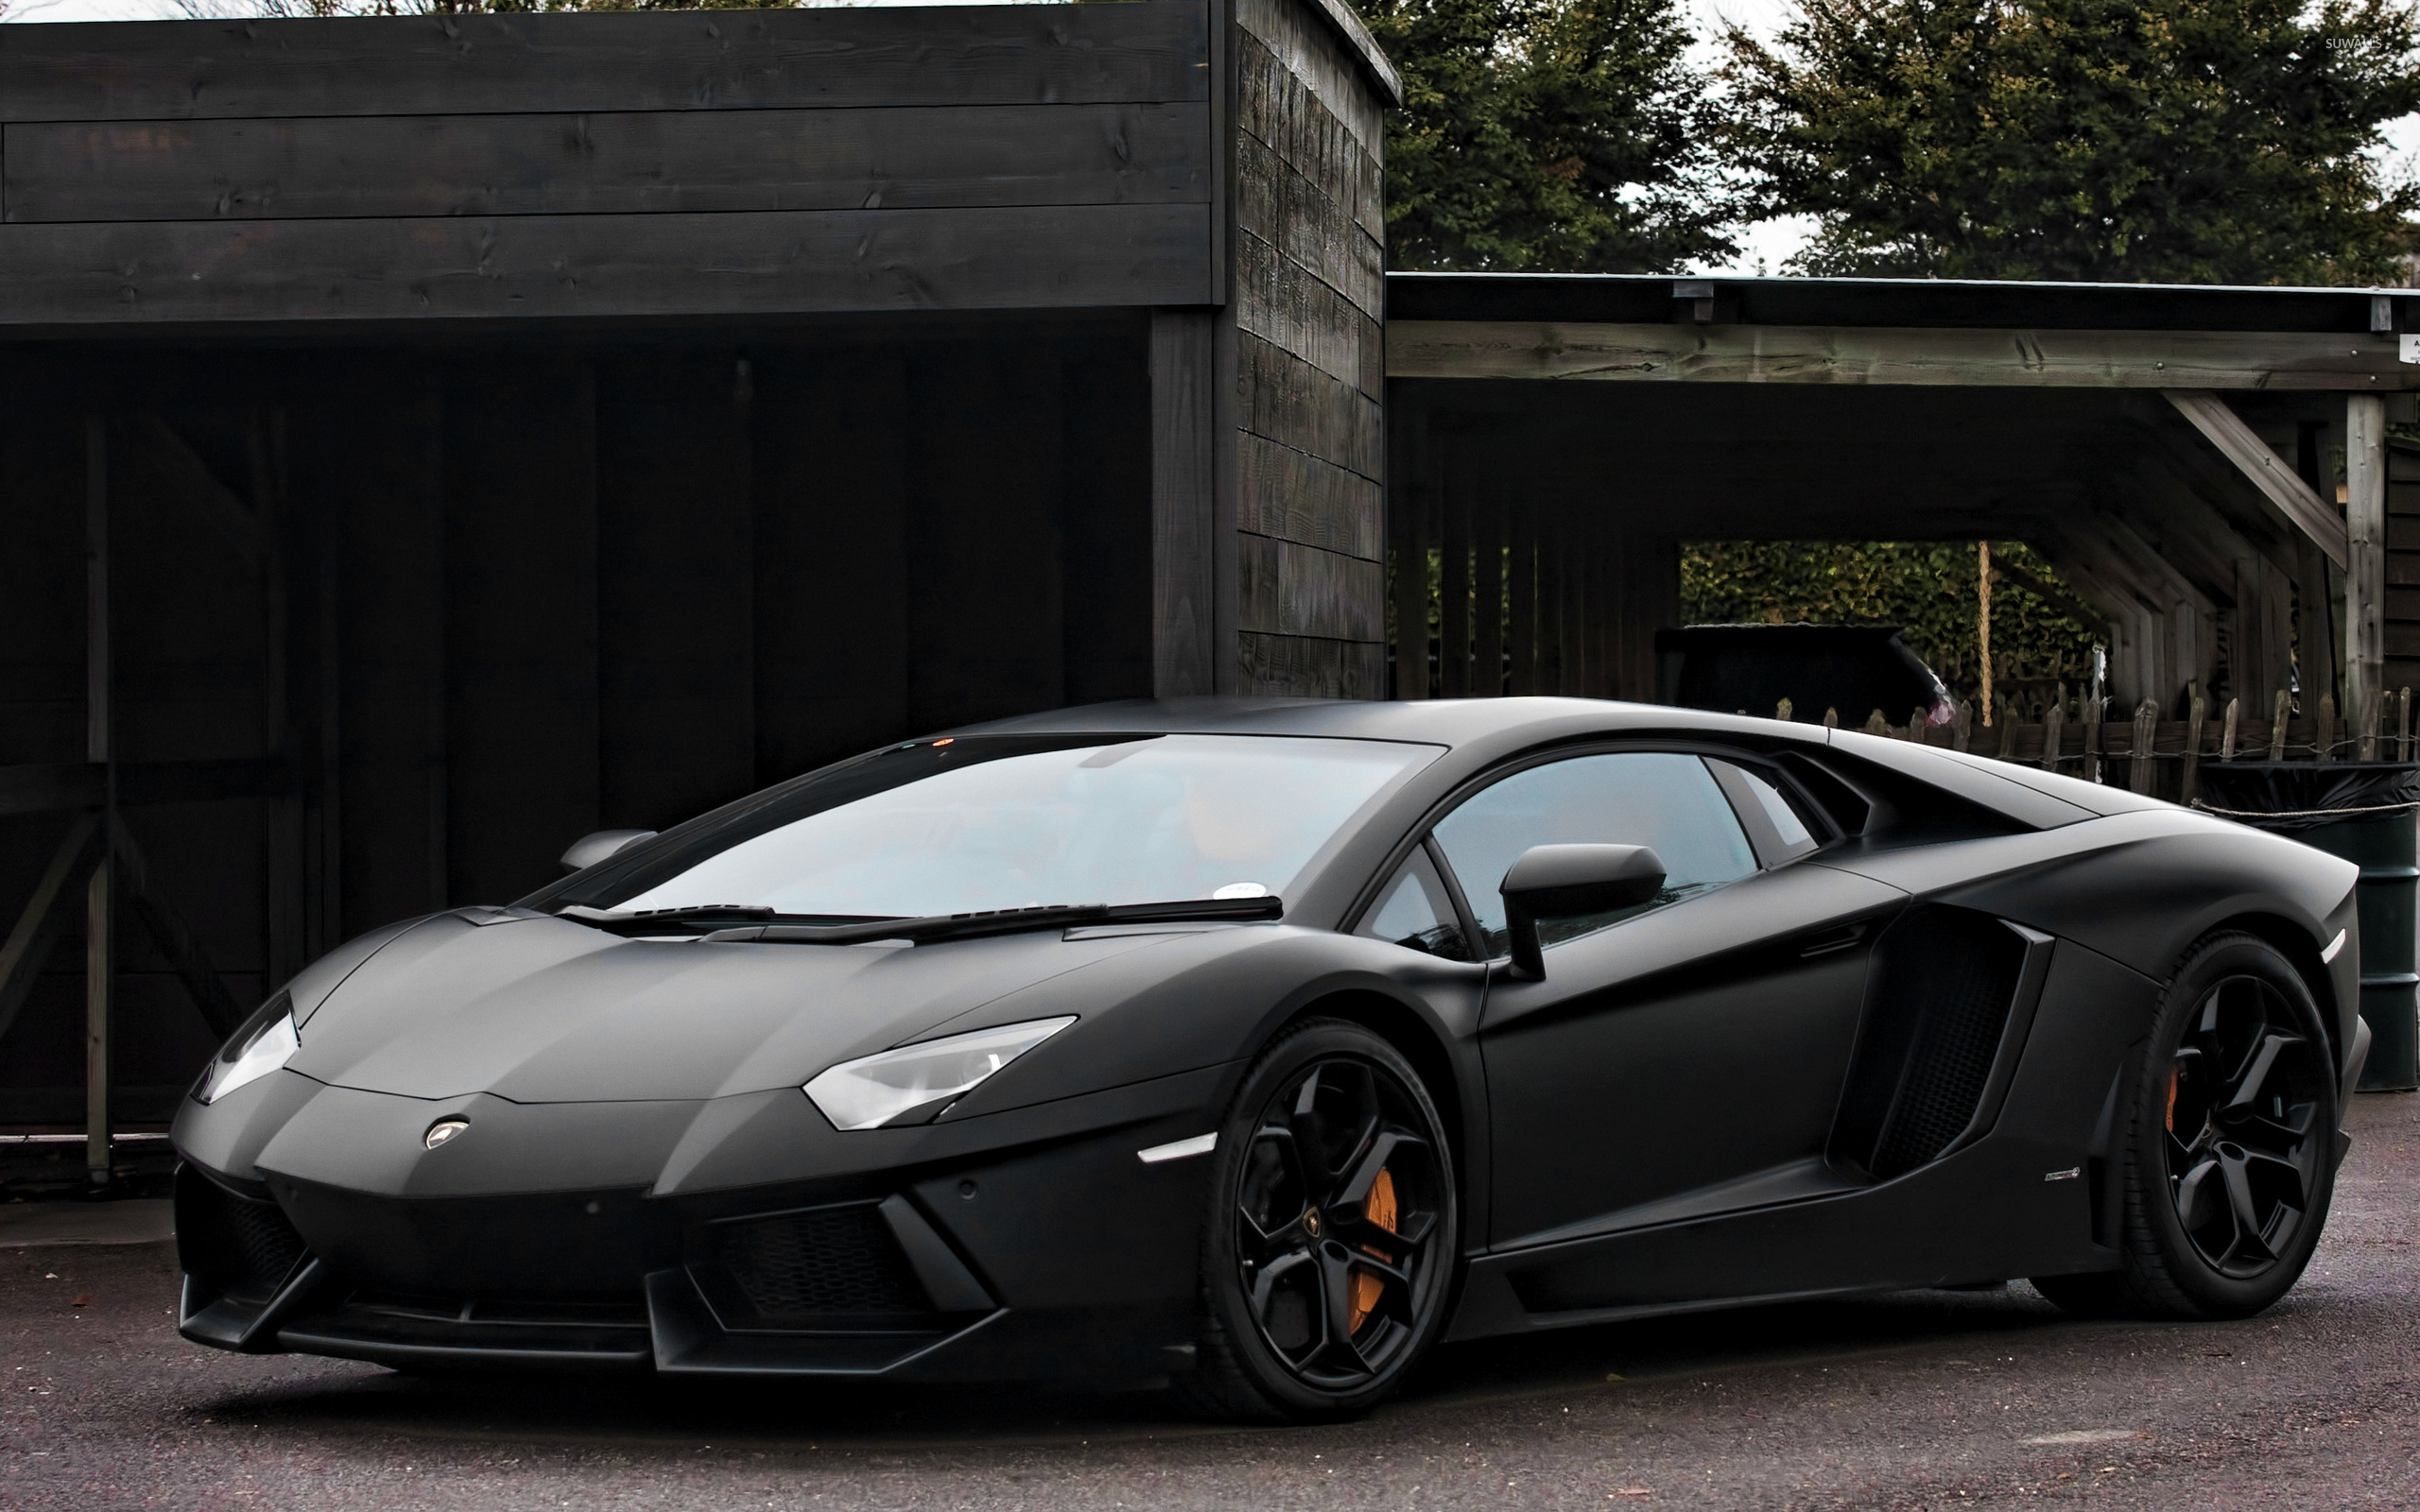 parcked black lamborghini aventador front side view. Black Bedroom Furniture Sets. Home Design Ideas